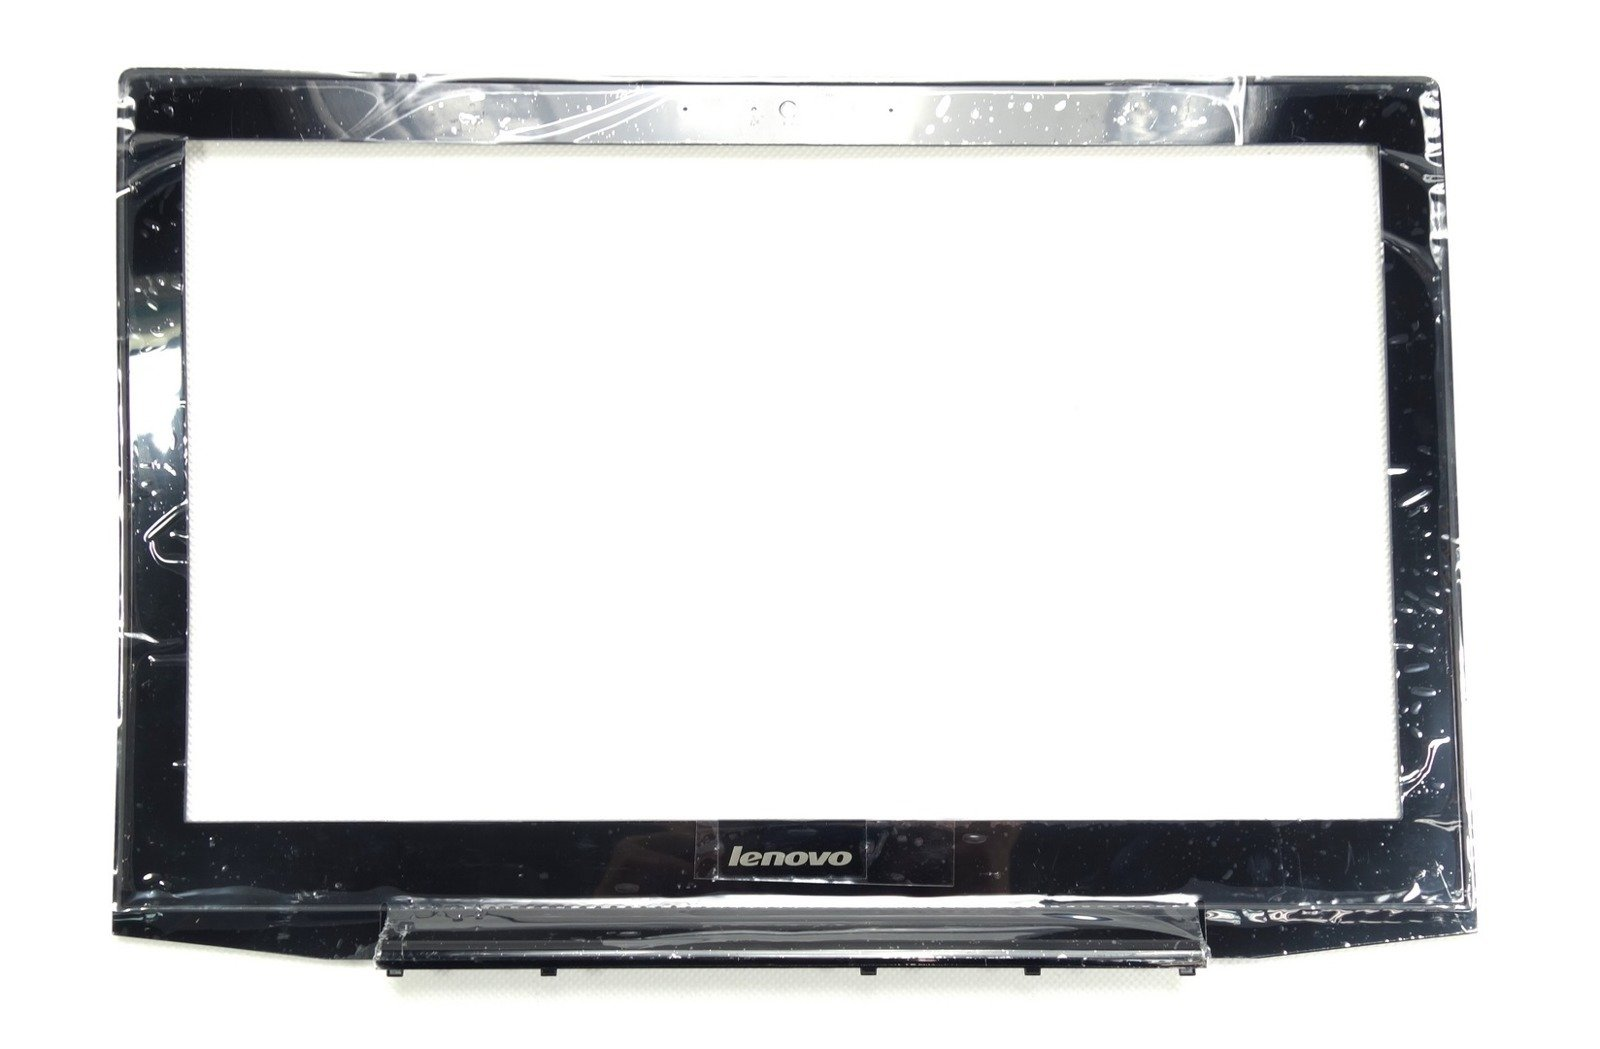 Ramka matrycy do laptopa Lenovo IdeaPad Y50-70